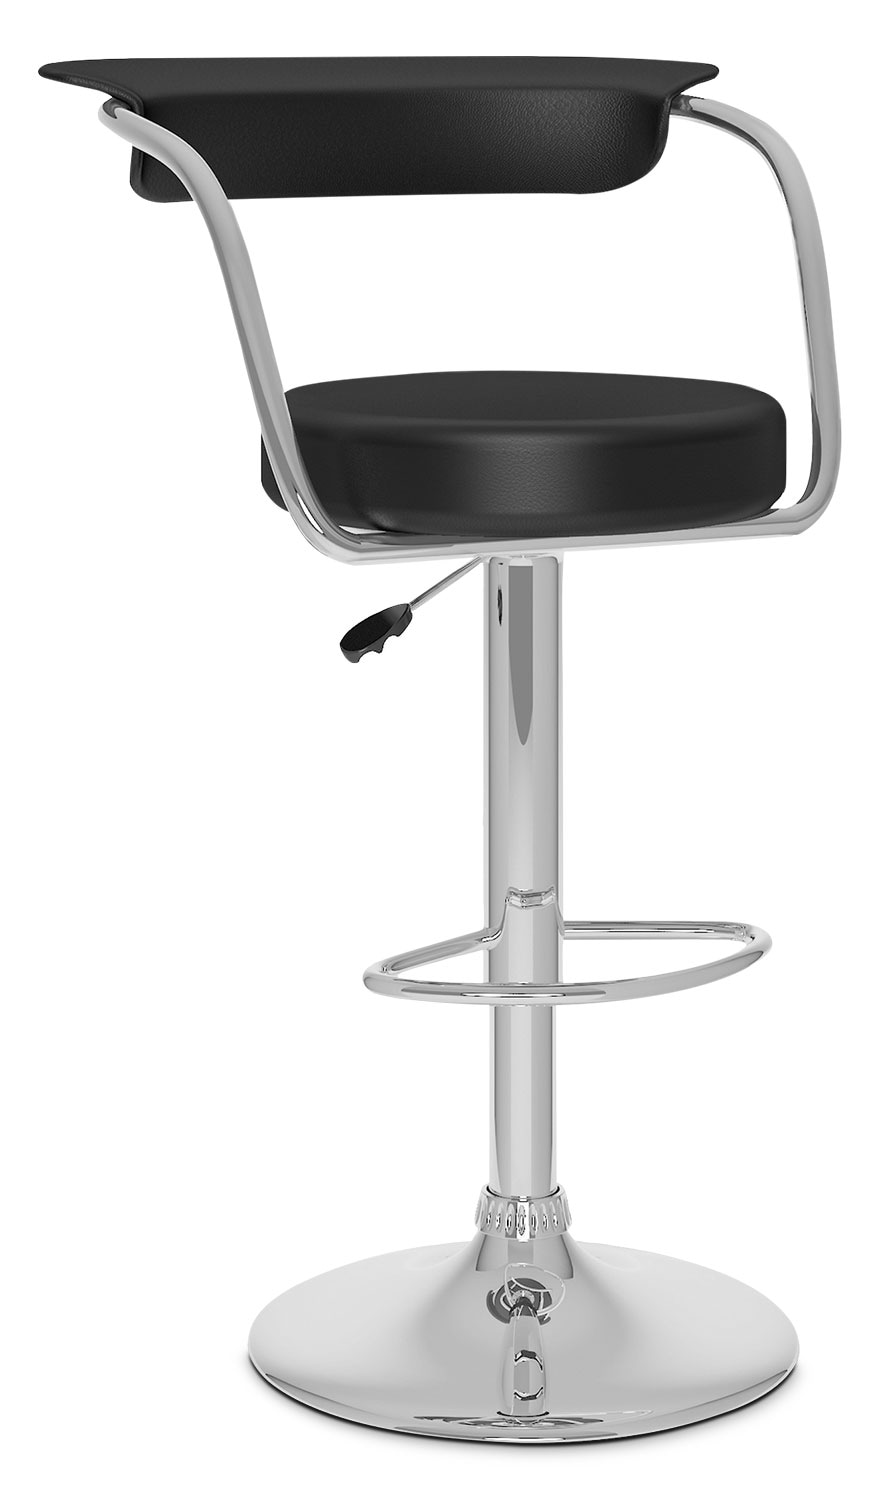 Dining Room Furniture - CorLiving Open-Back Adjustable Bar Stool - Black